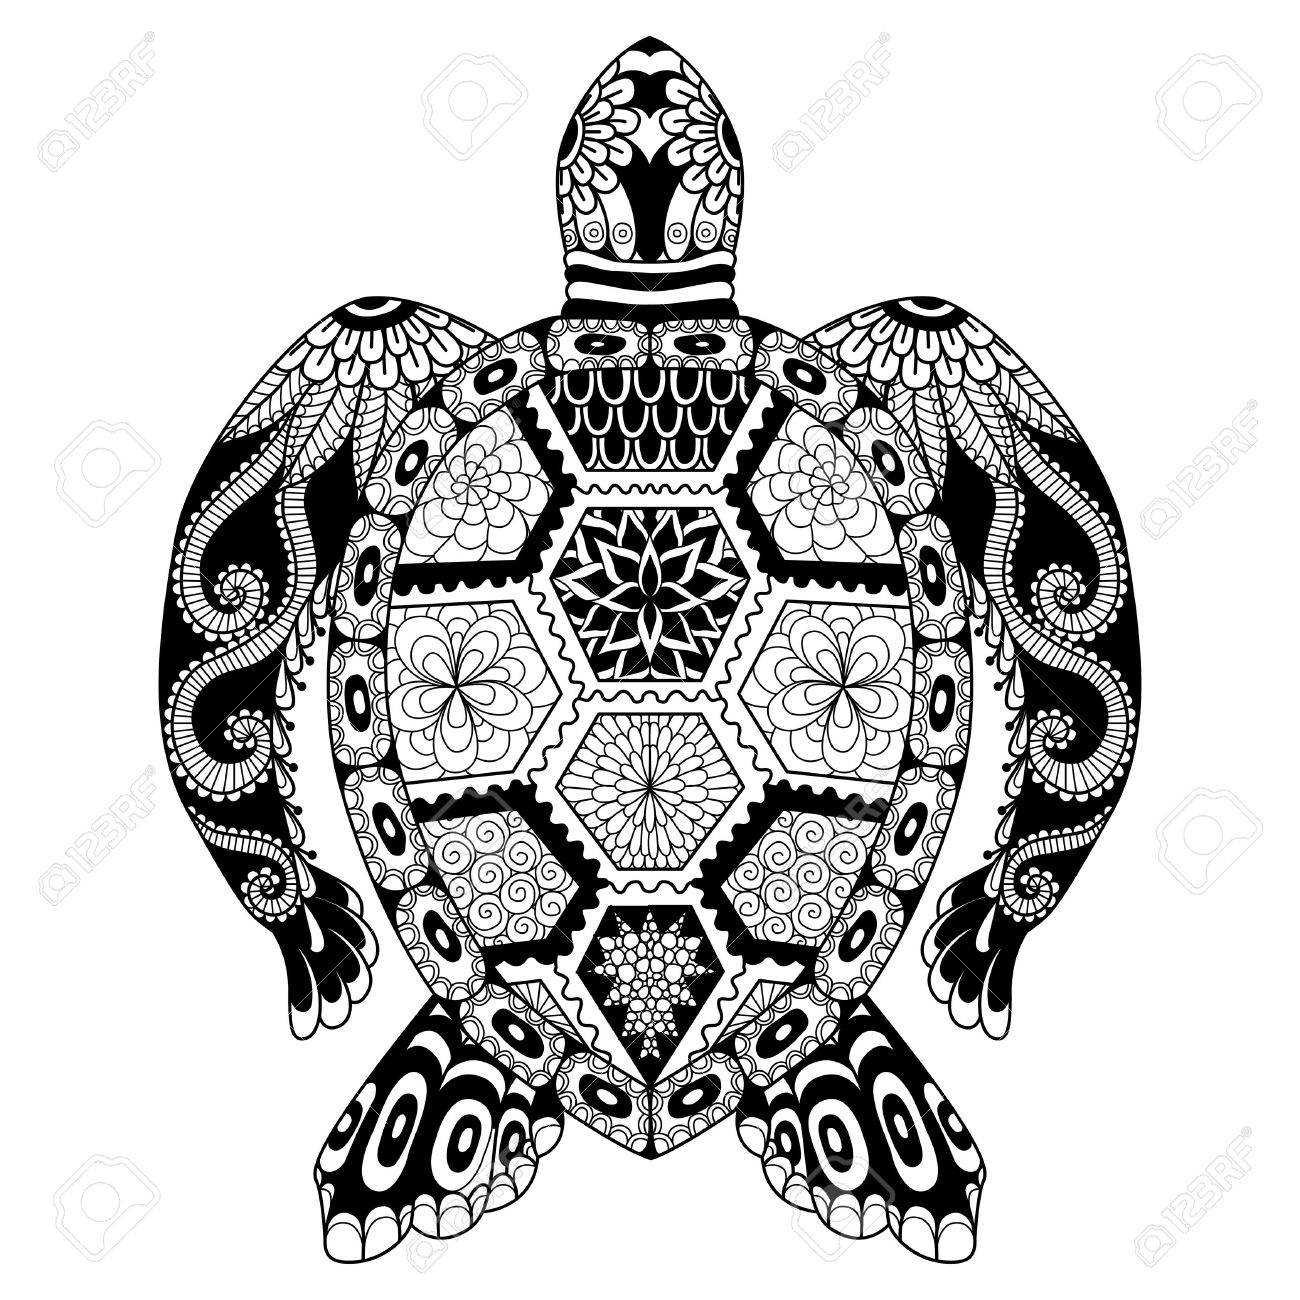 Turtle Drawing at GetDrawings.com | Free for personal use Turtle ...